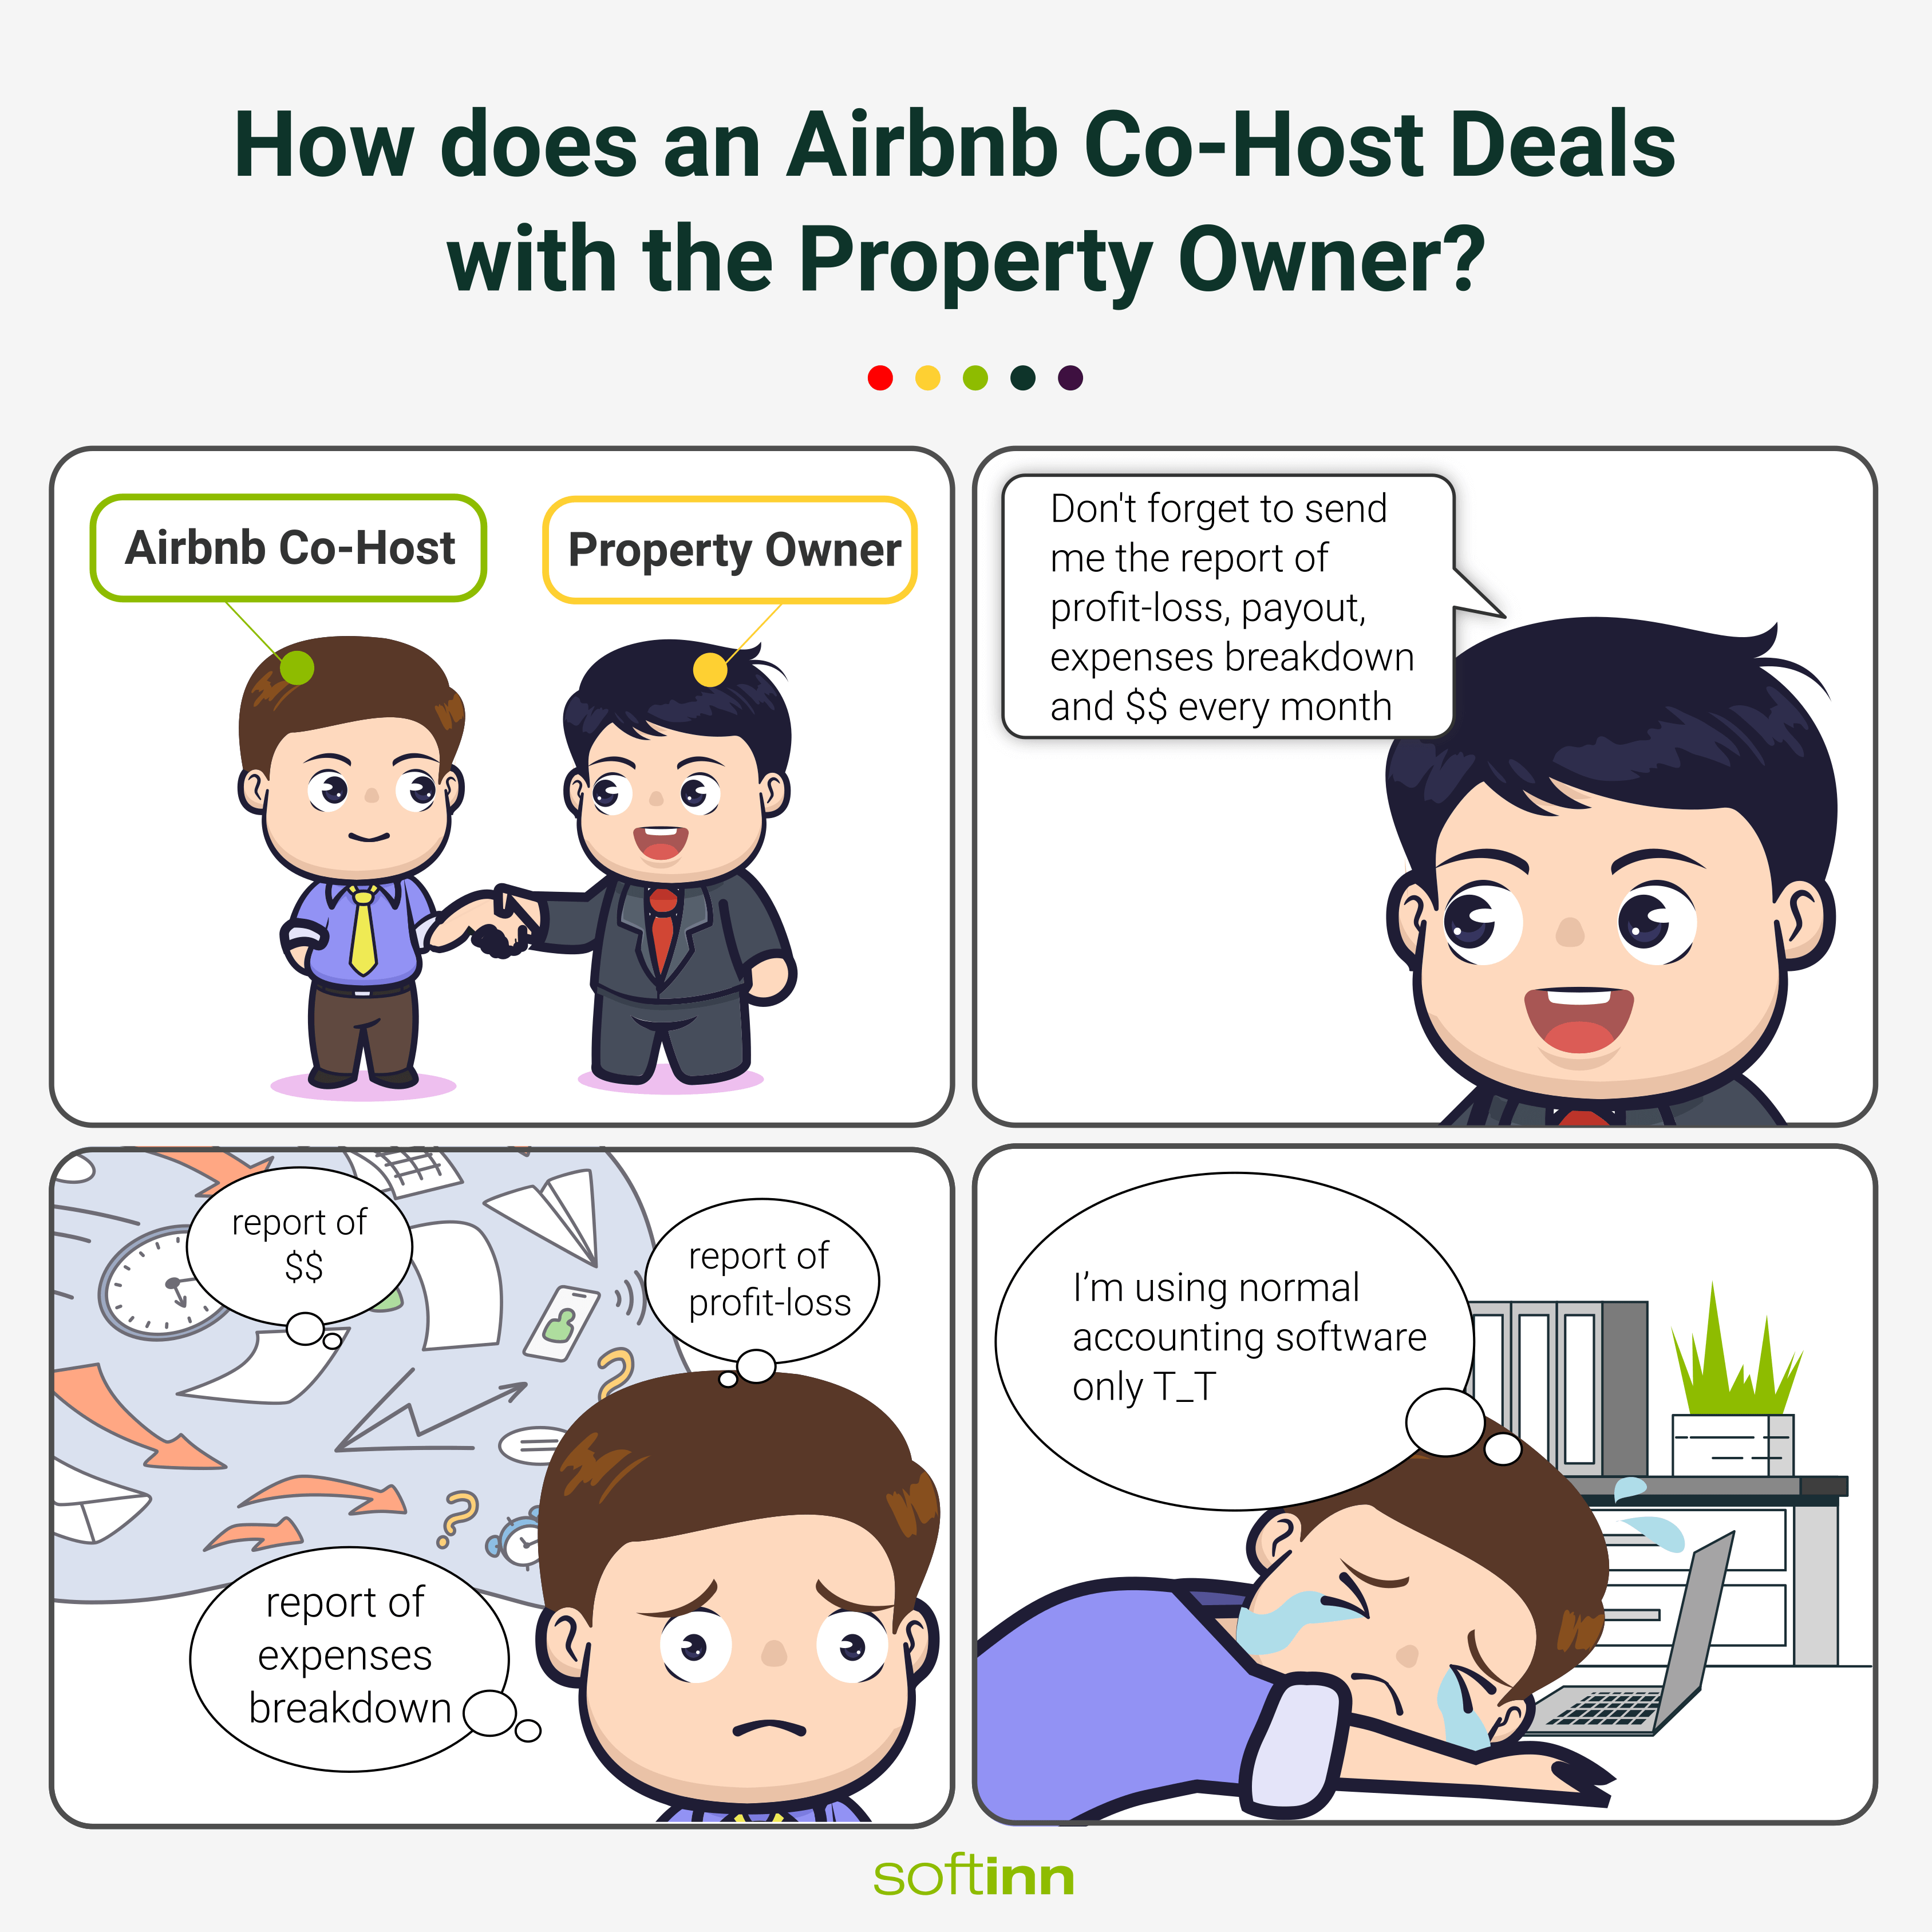 How does an Airbnb Operator Deals with property owner T1